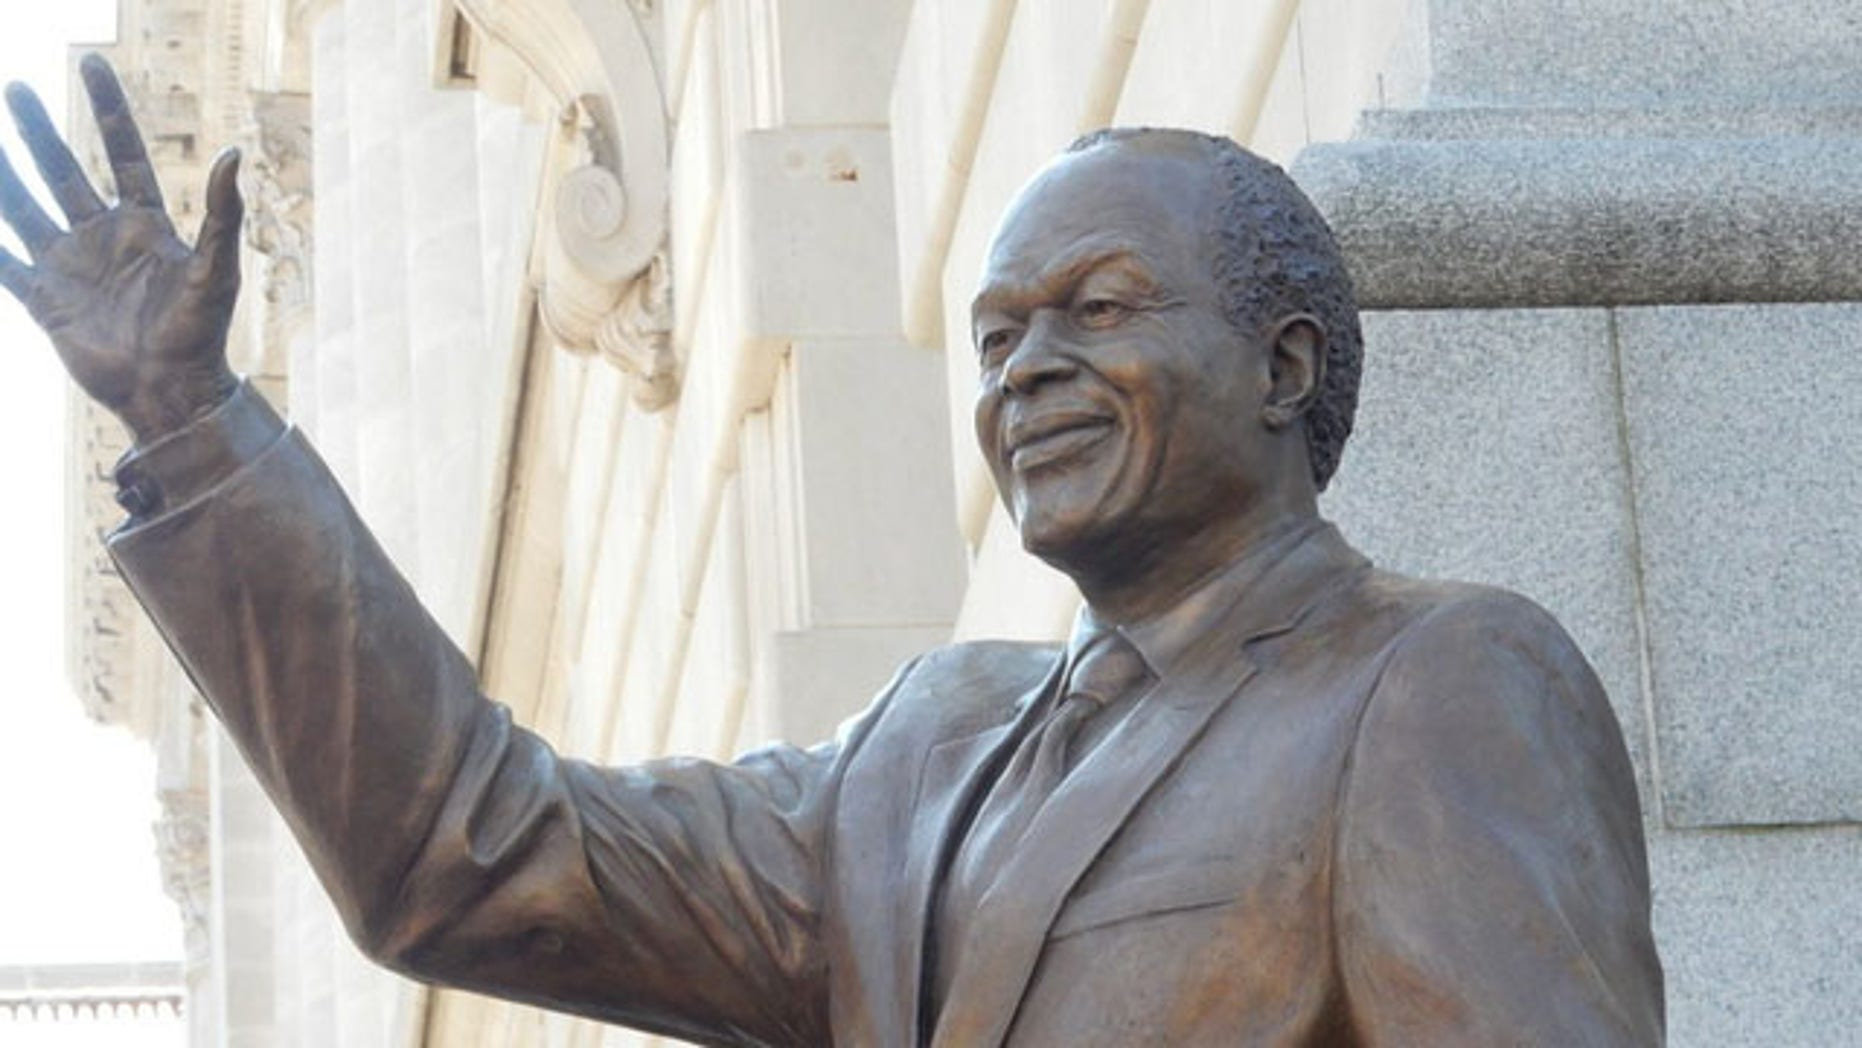 Marion barry statue